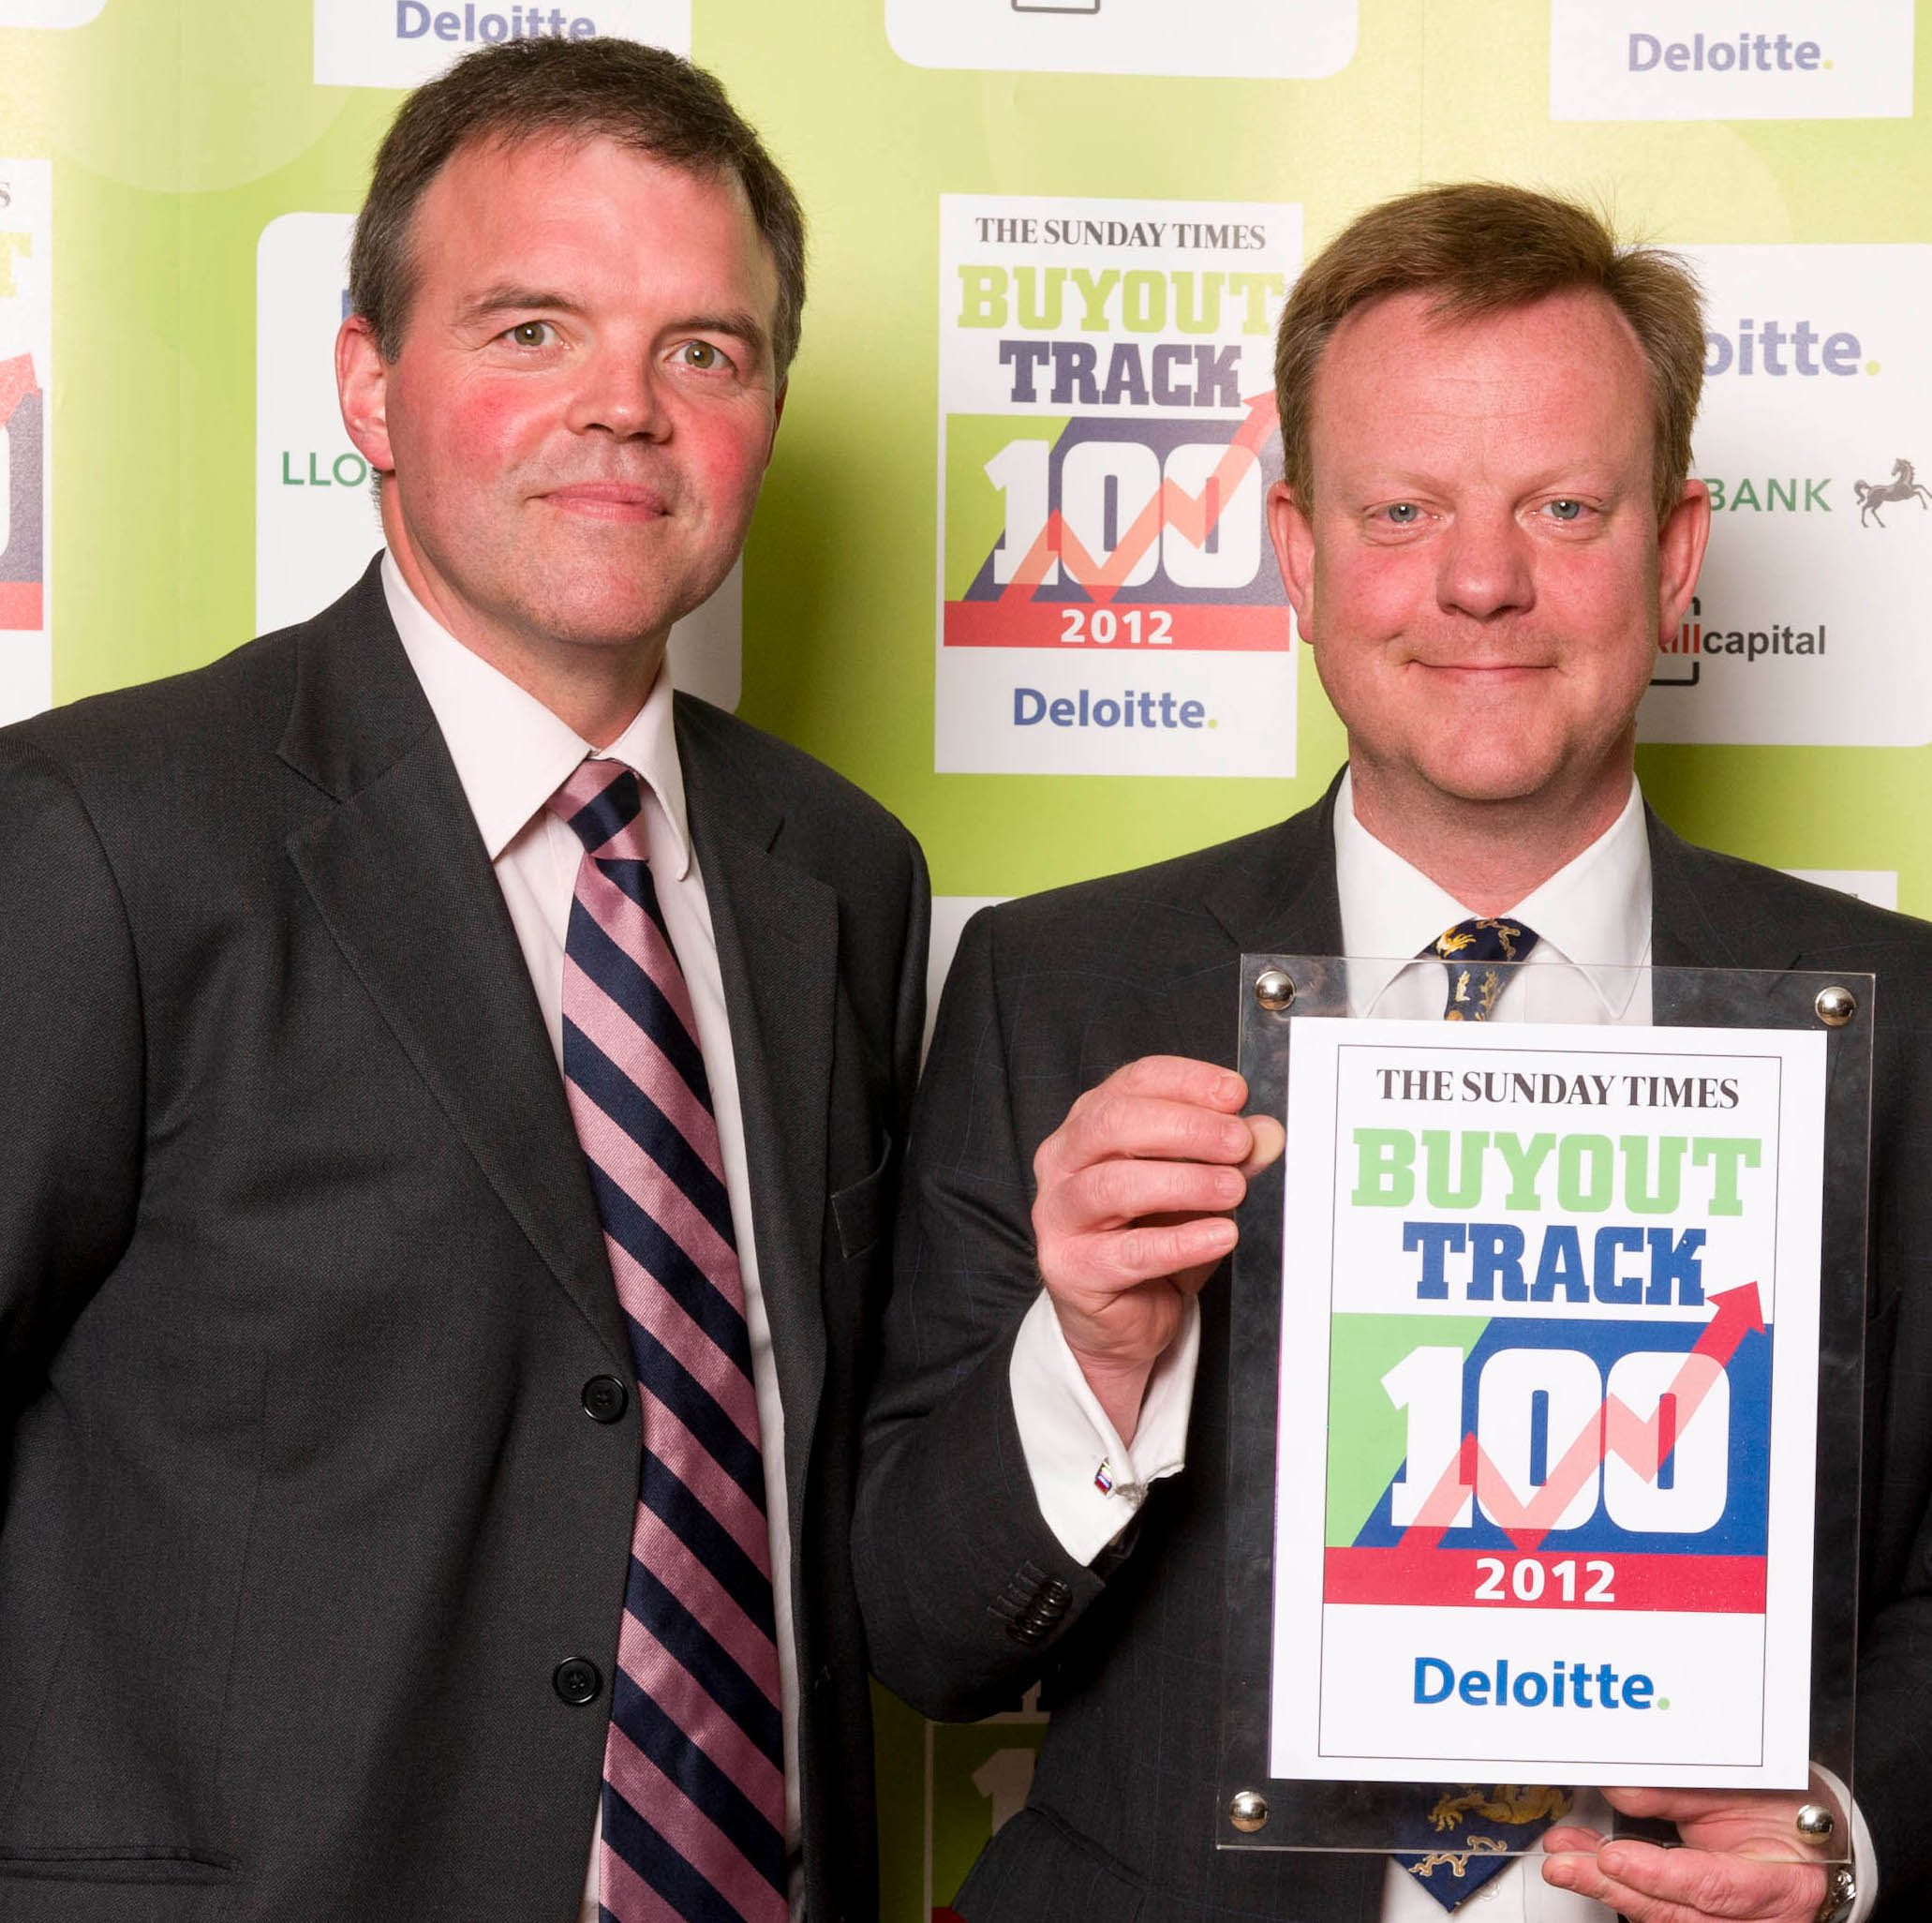 Adler & Allan Buyout Track 100 awards